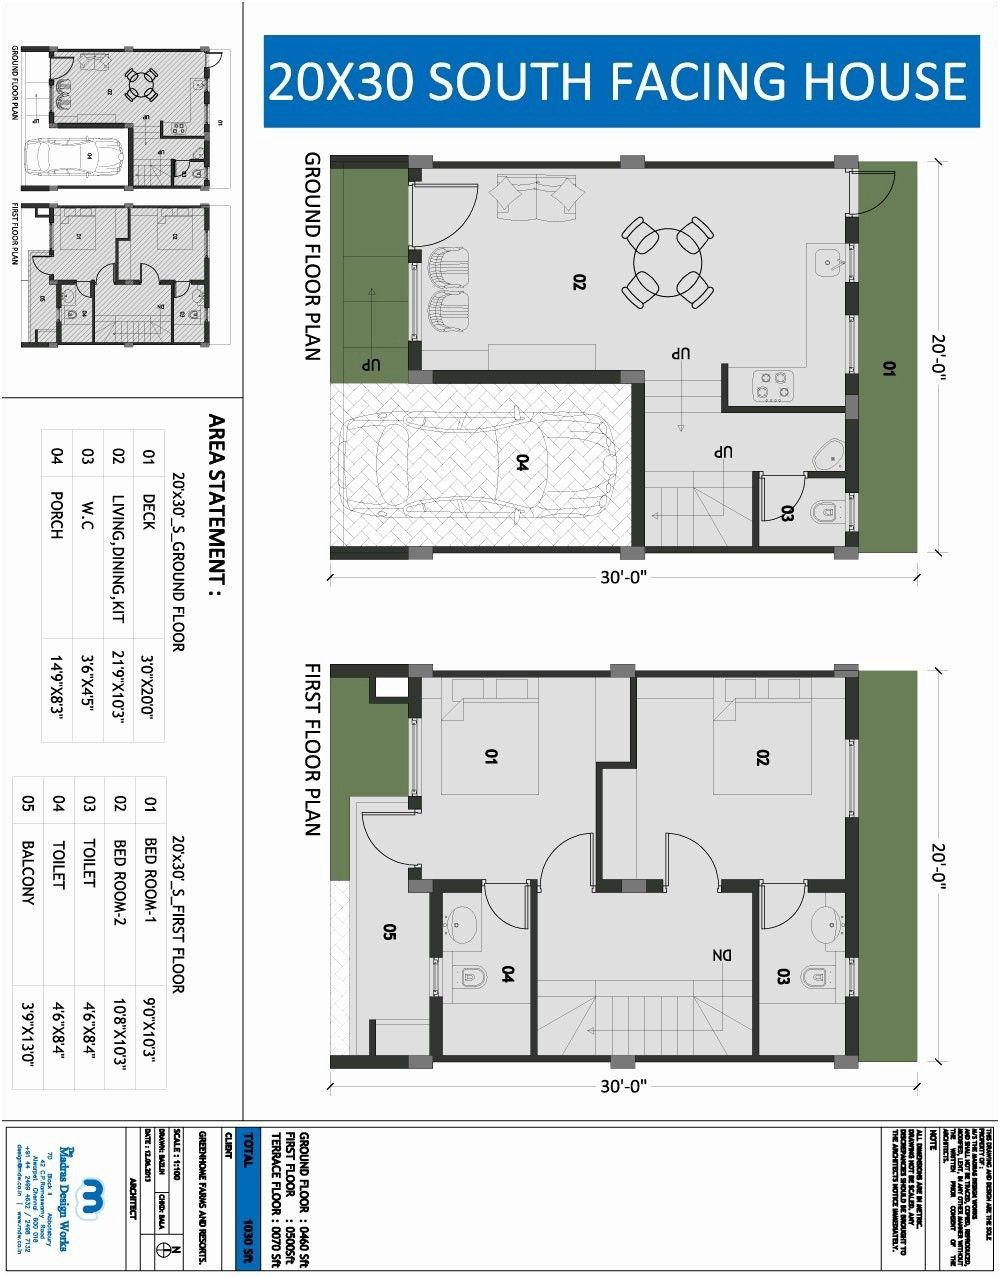 South Facing House Floor Plans Plan 30x30 30x50 South Facing House 20x30 House Plans House Plans